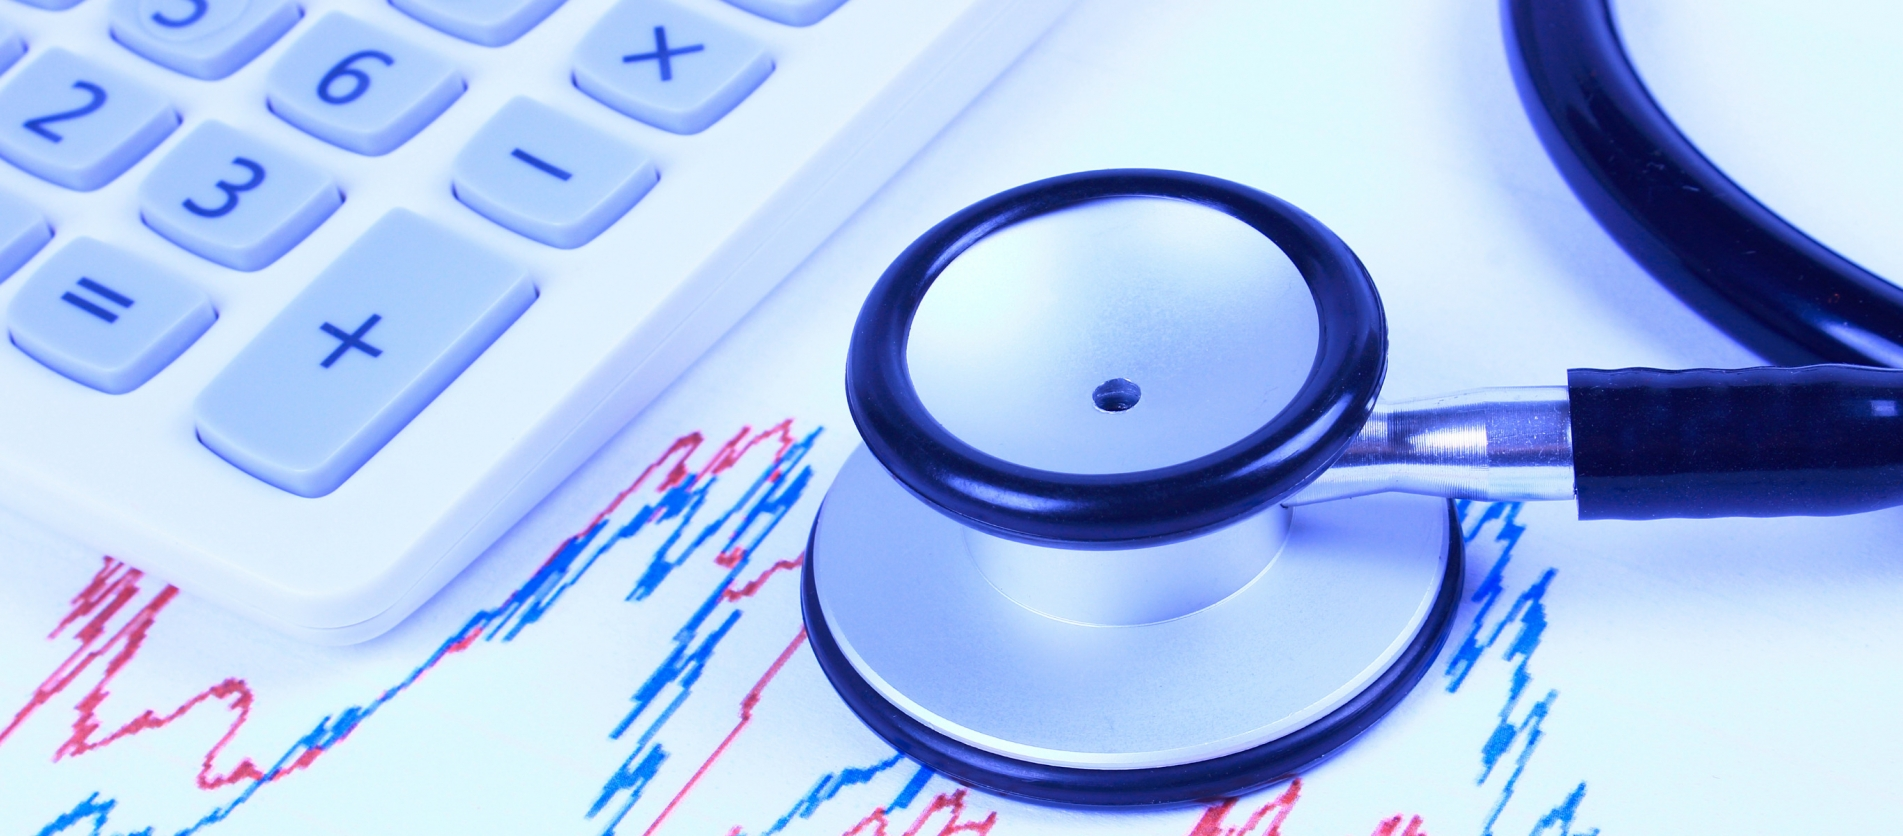 graphs-with-stethoscope-and-calculator-picture-id503072614_1